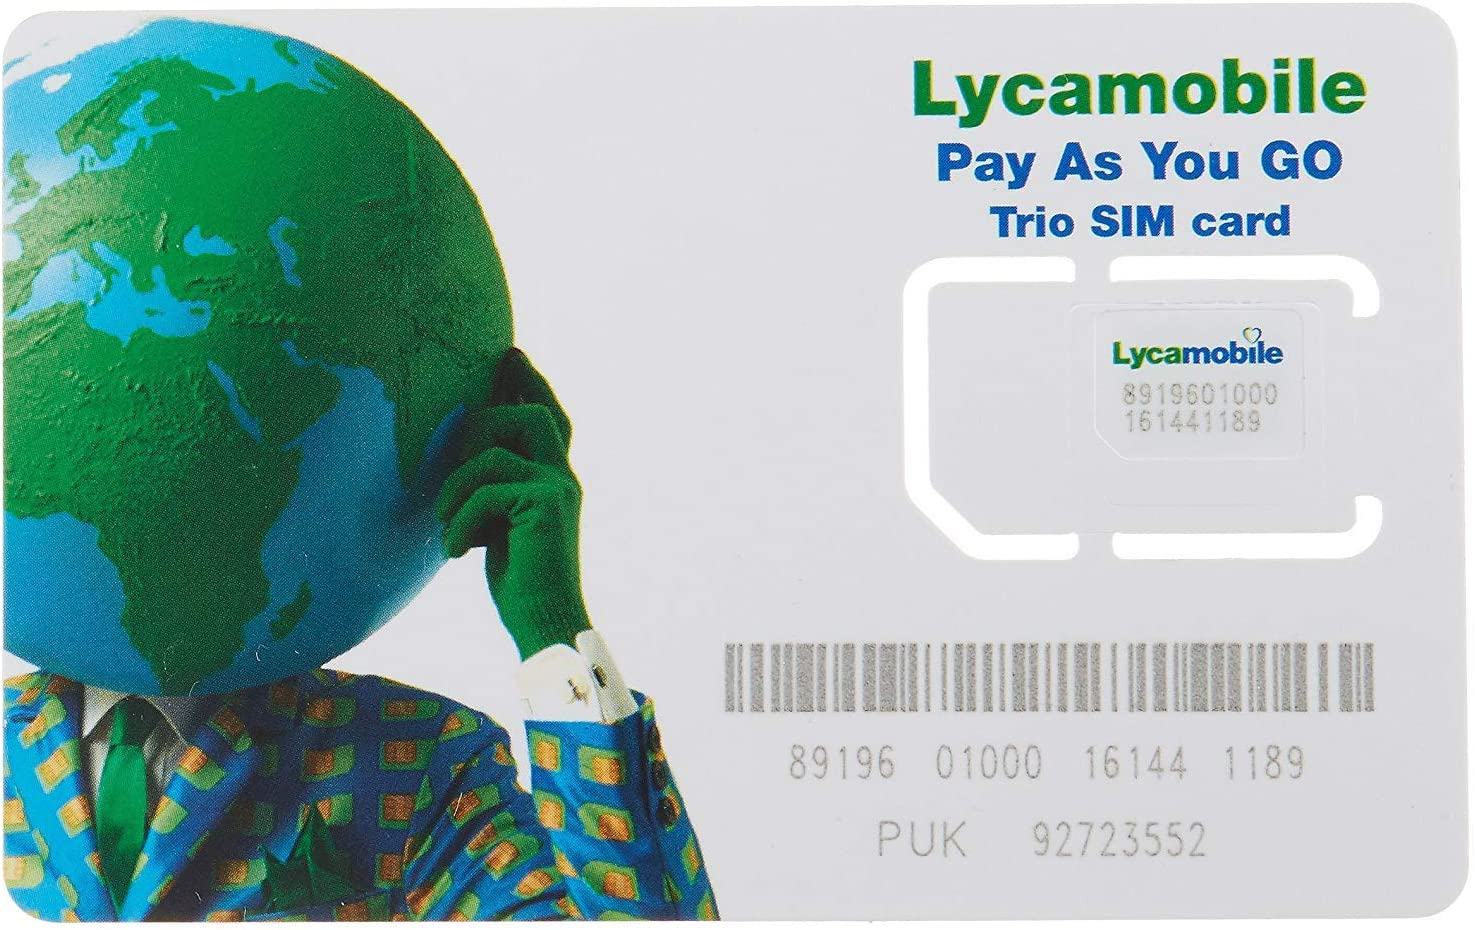 Lycamobile $23 plan pre-loaded sim card with 2 month service